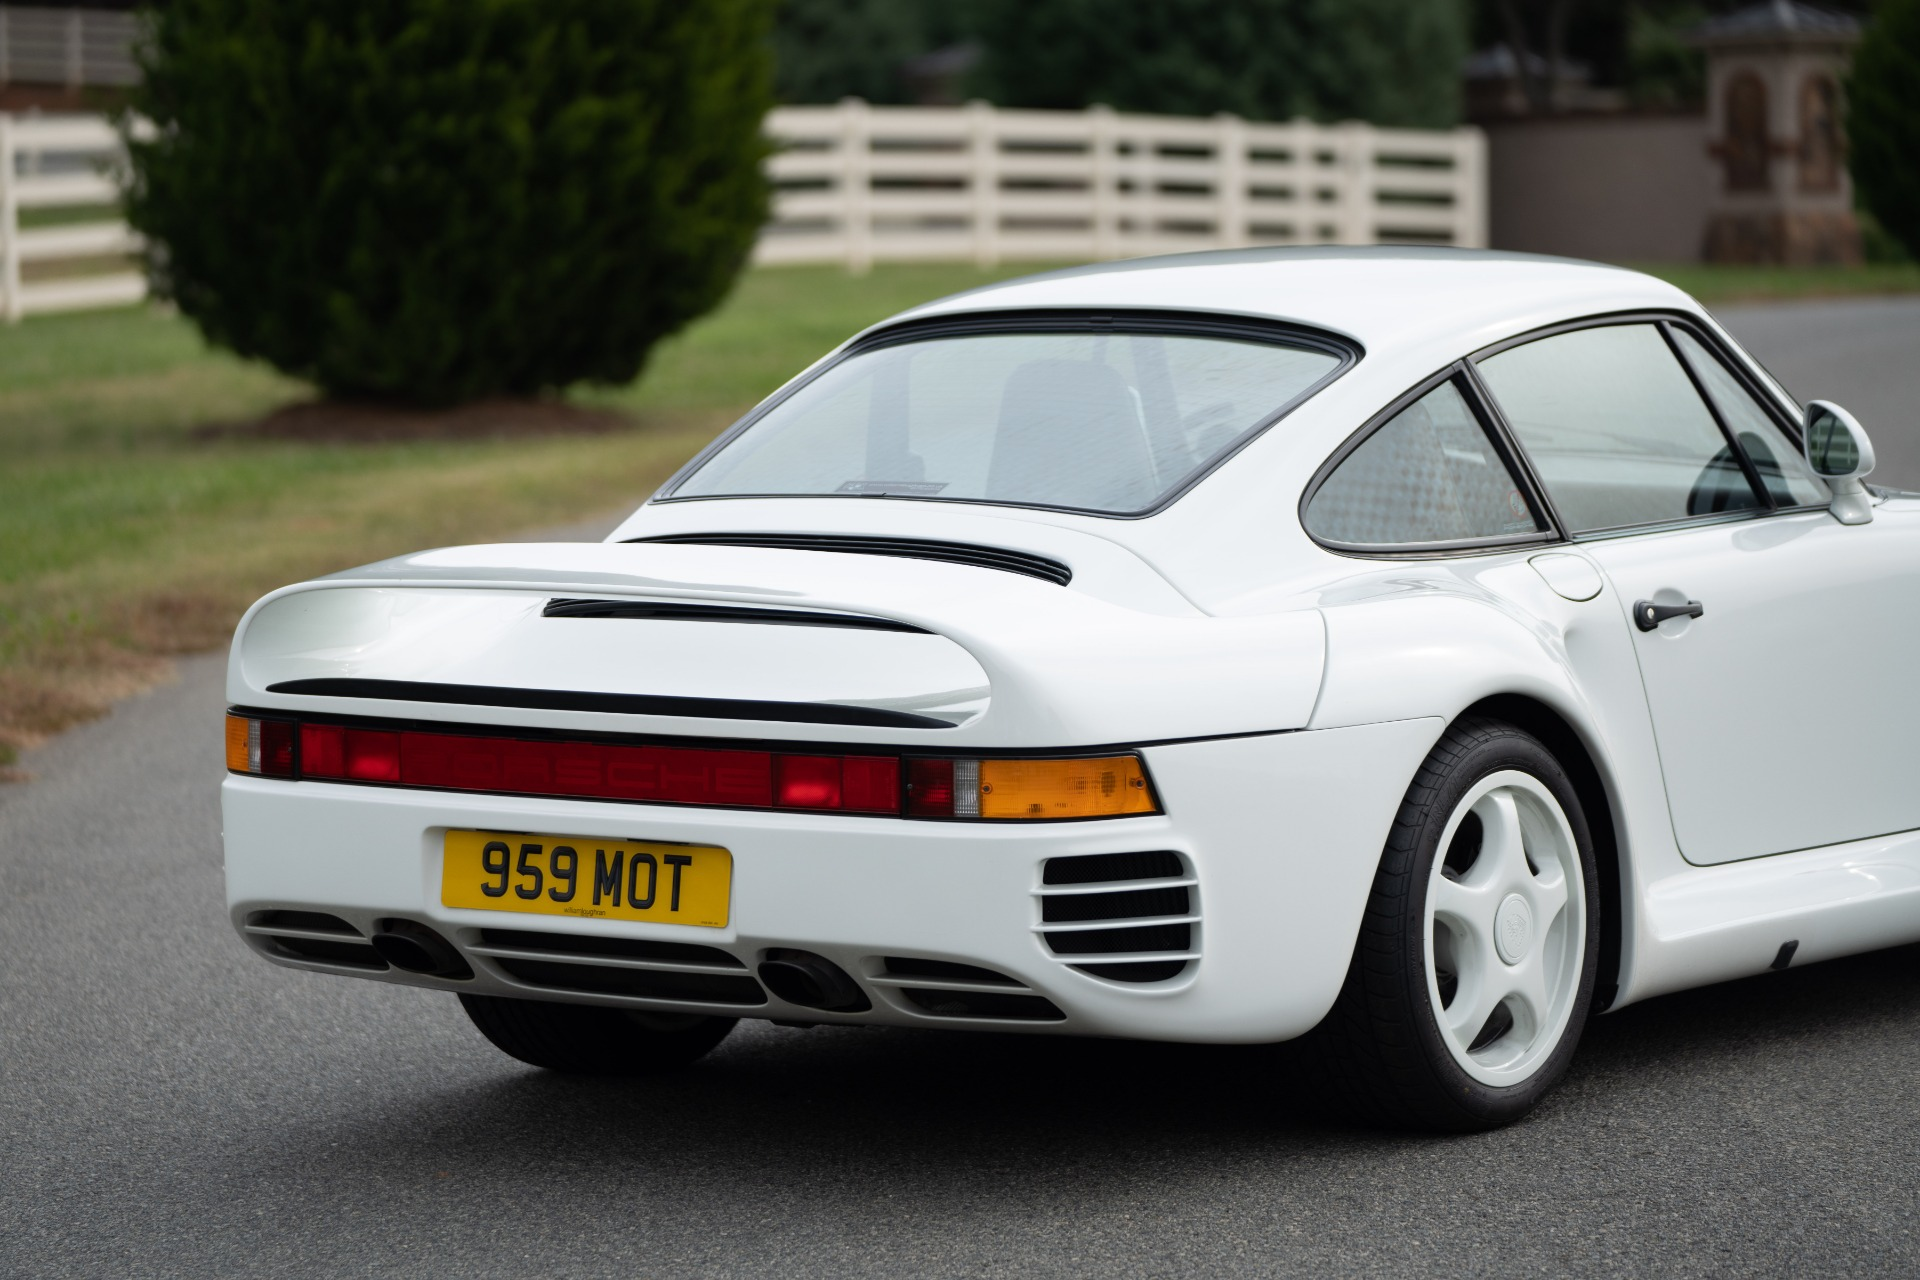 Used 1988 Porsche 959 KOMFORT COUPE / AWD / 6-SPEED MANUAL / ORIGINAL SUPERCAR for sale $1,399,999 at Formula Imports in Charlotte NC 28227 28